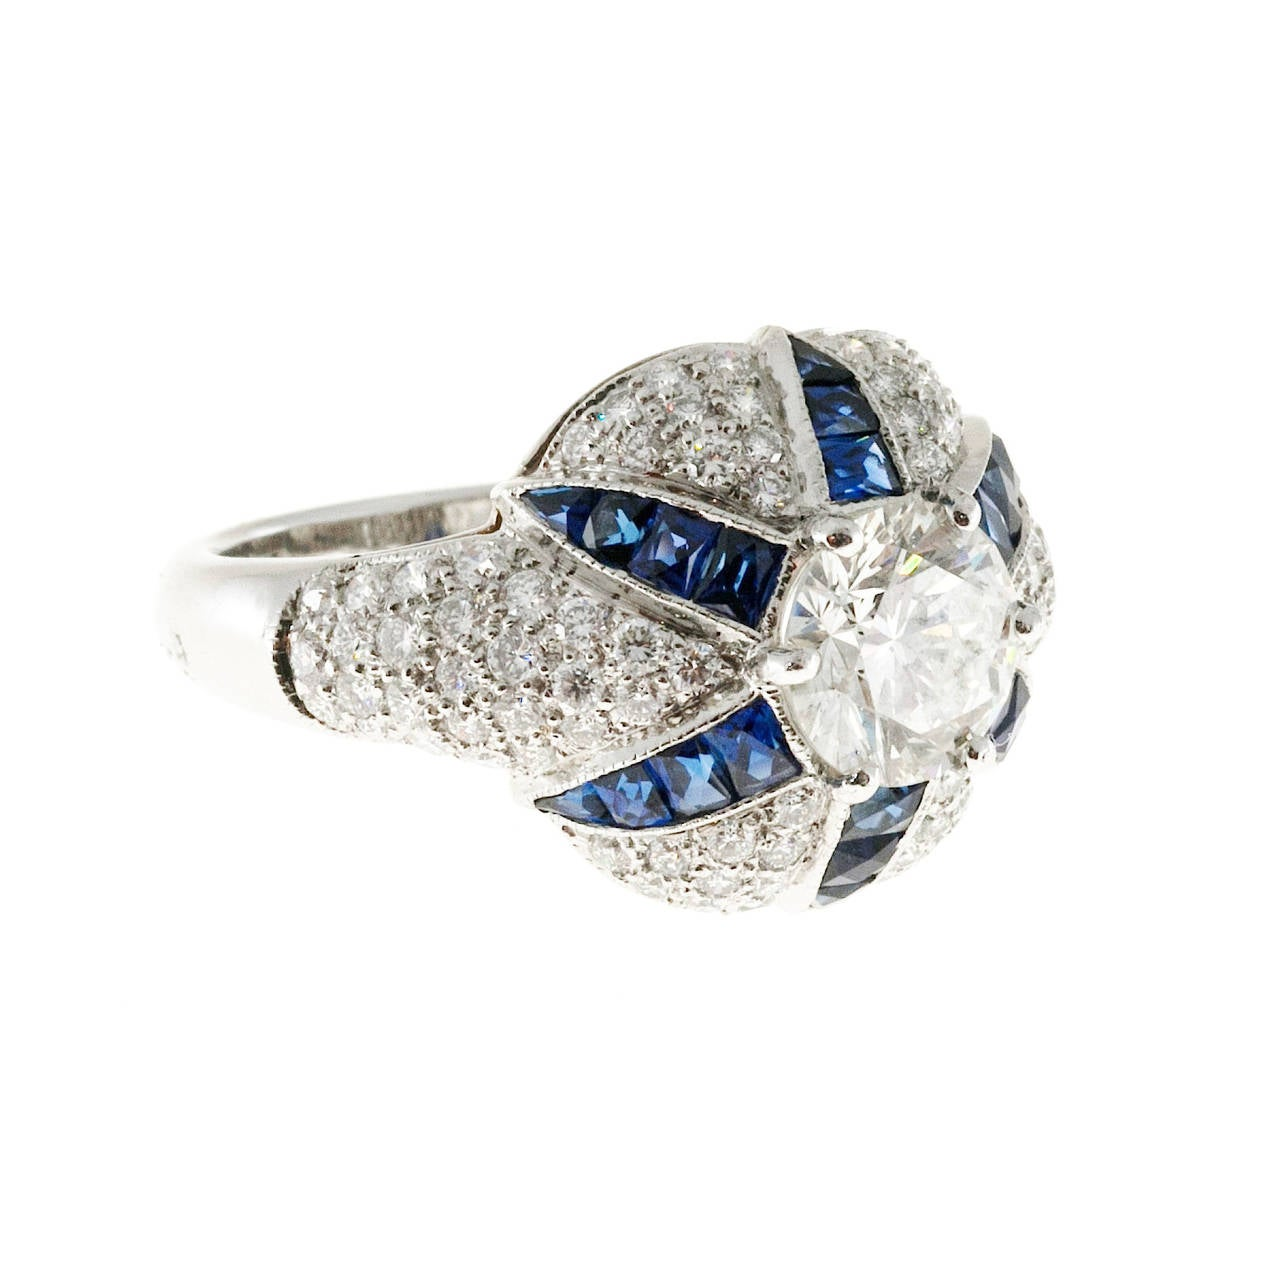 French Cut Calibre Sapphire Diamond Platinum Domed Ring For Sale